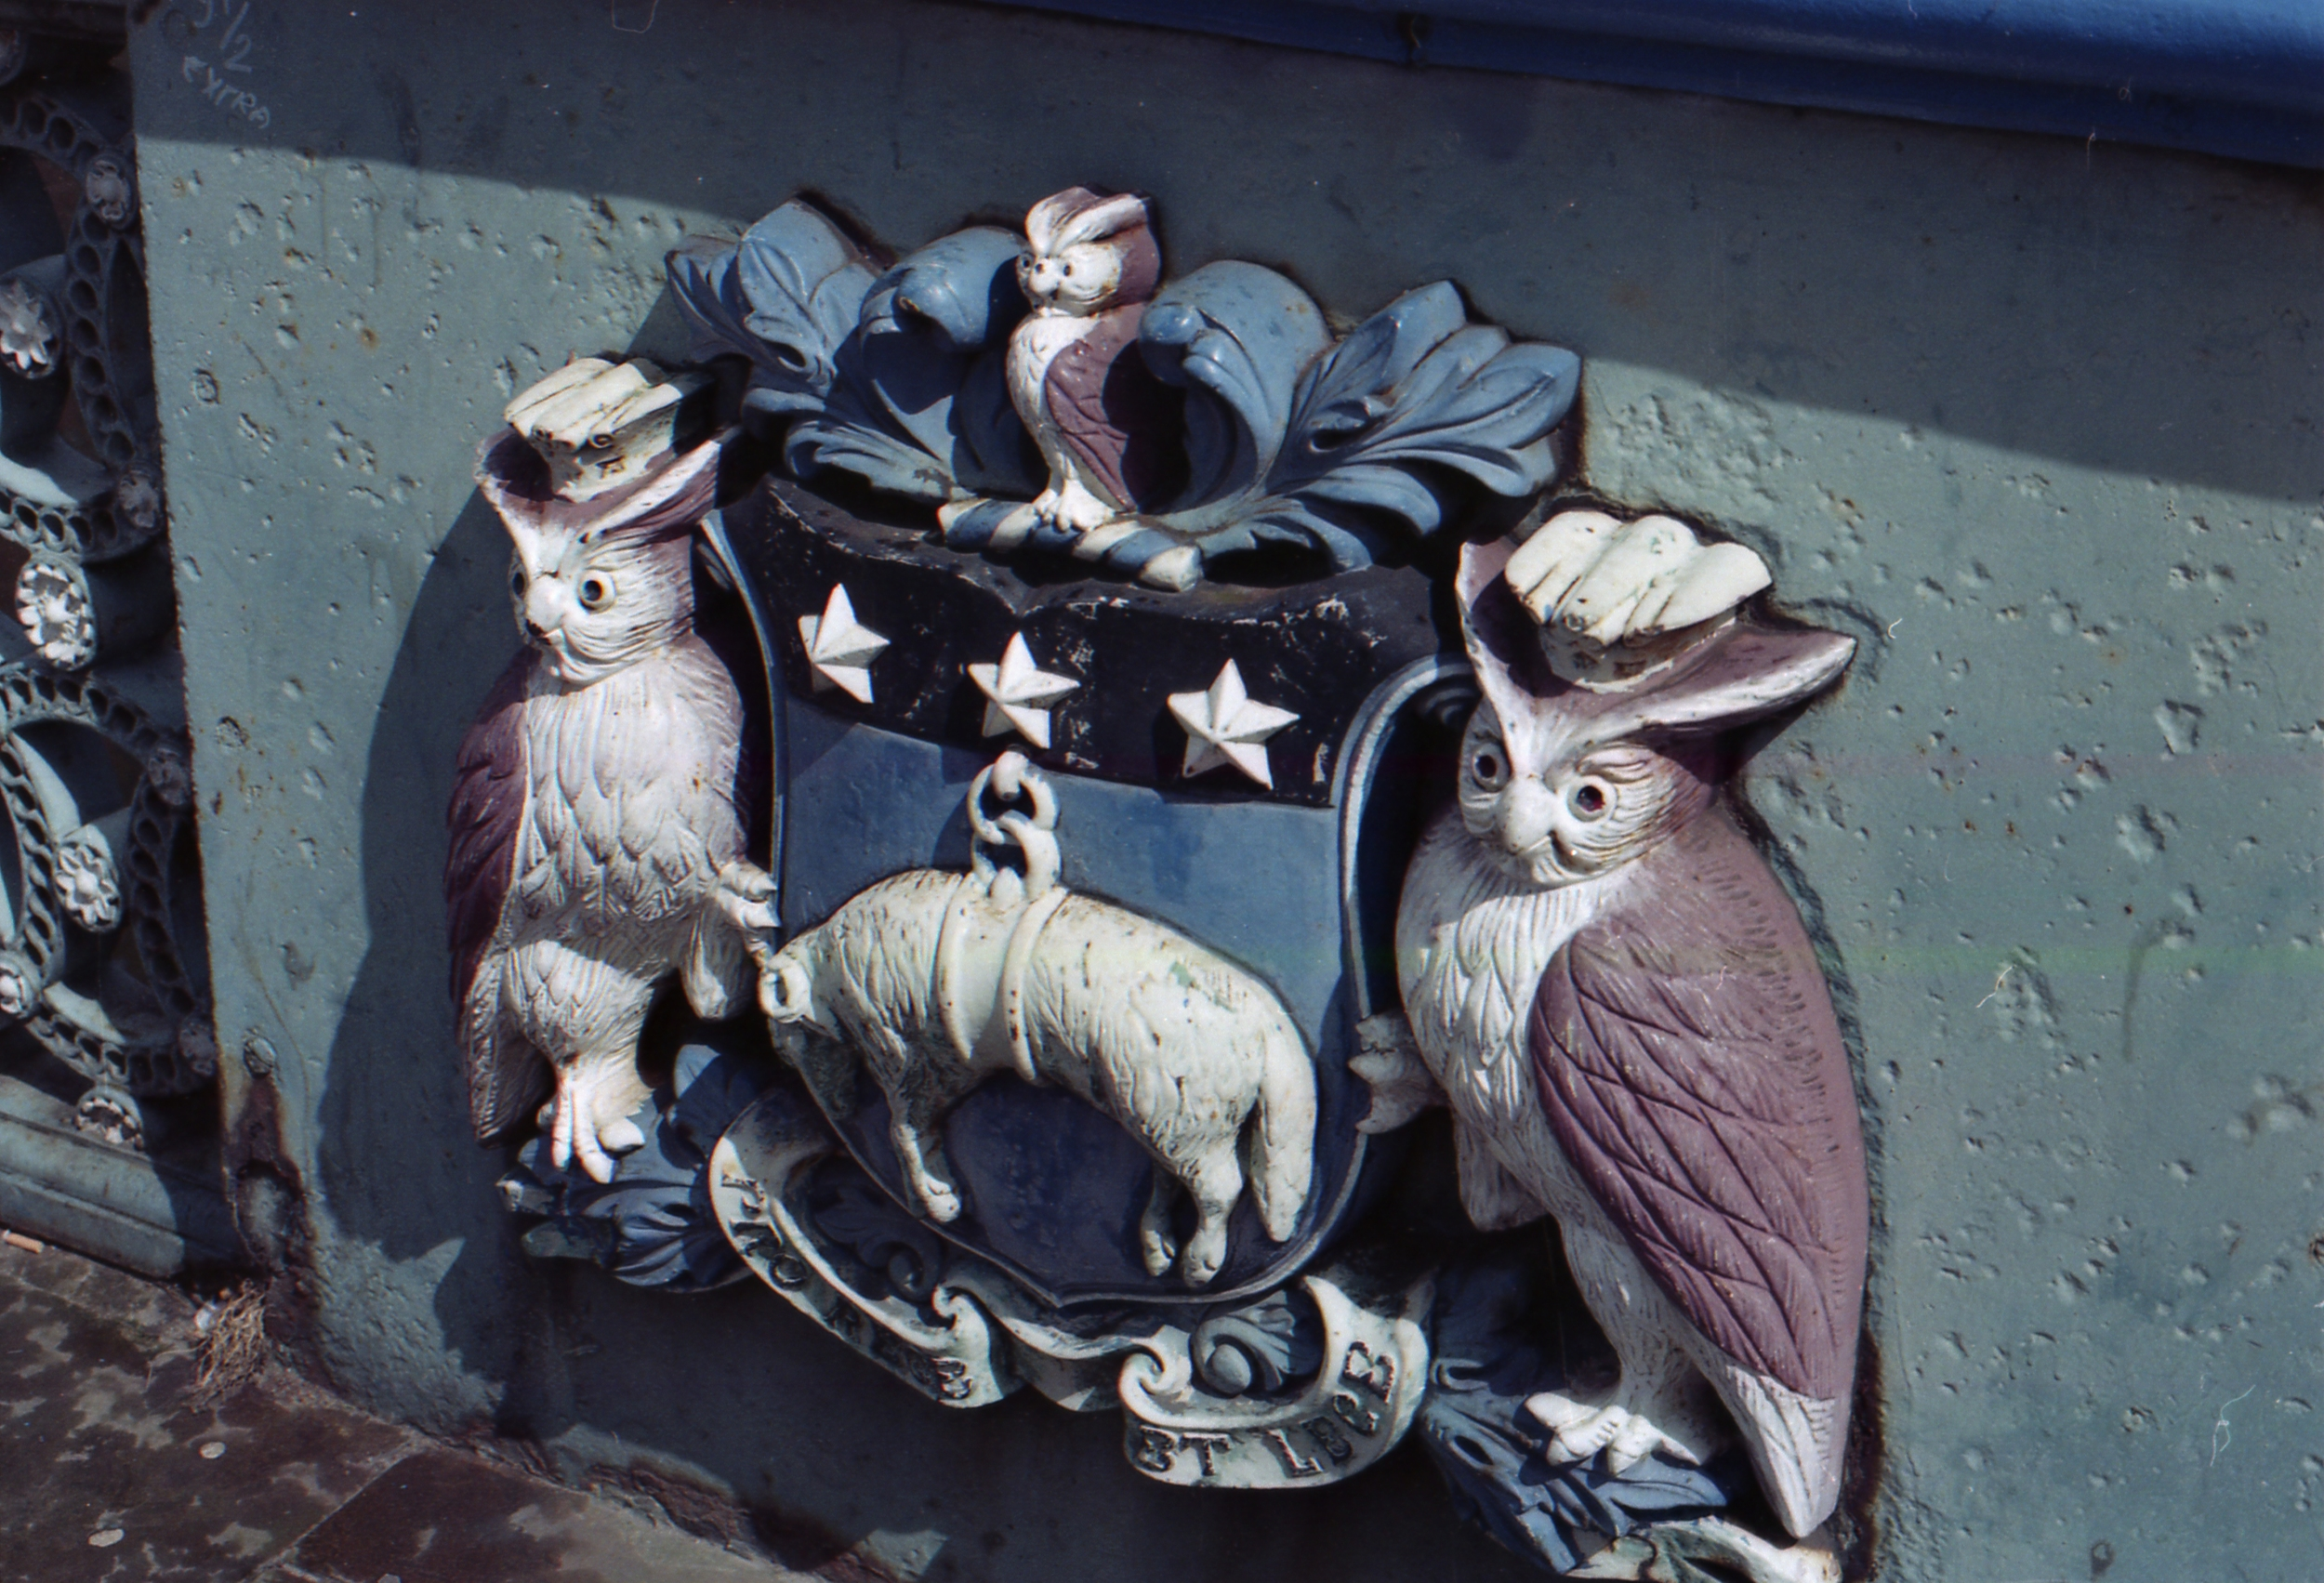 Day 117 - Owls are a thing in Leeds. These are on a bridge I cross everyday to work.